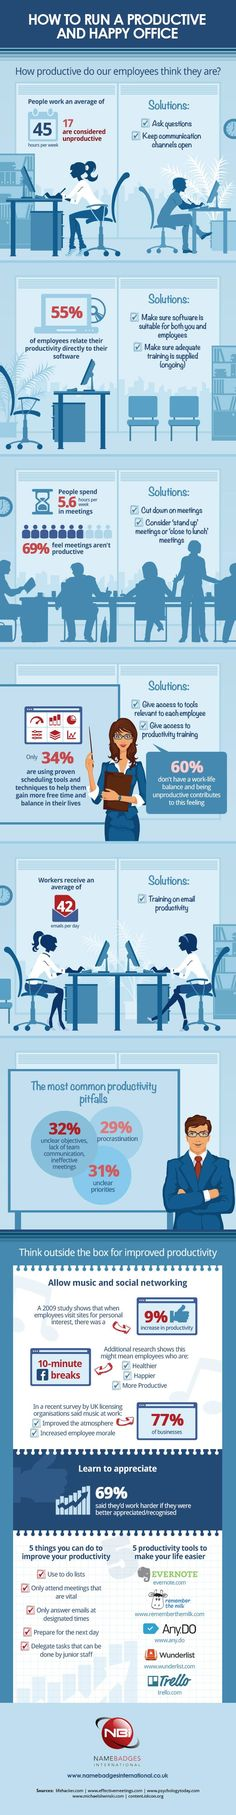 How to Run a Productive Office (Infographic)